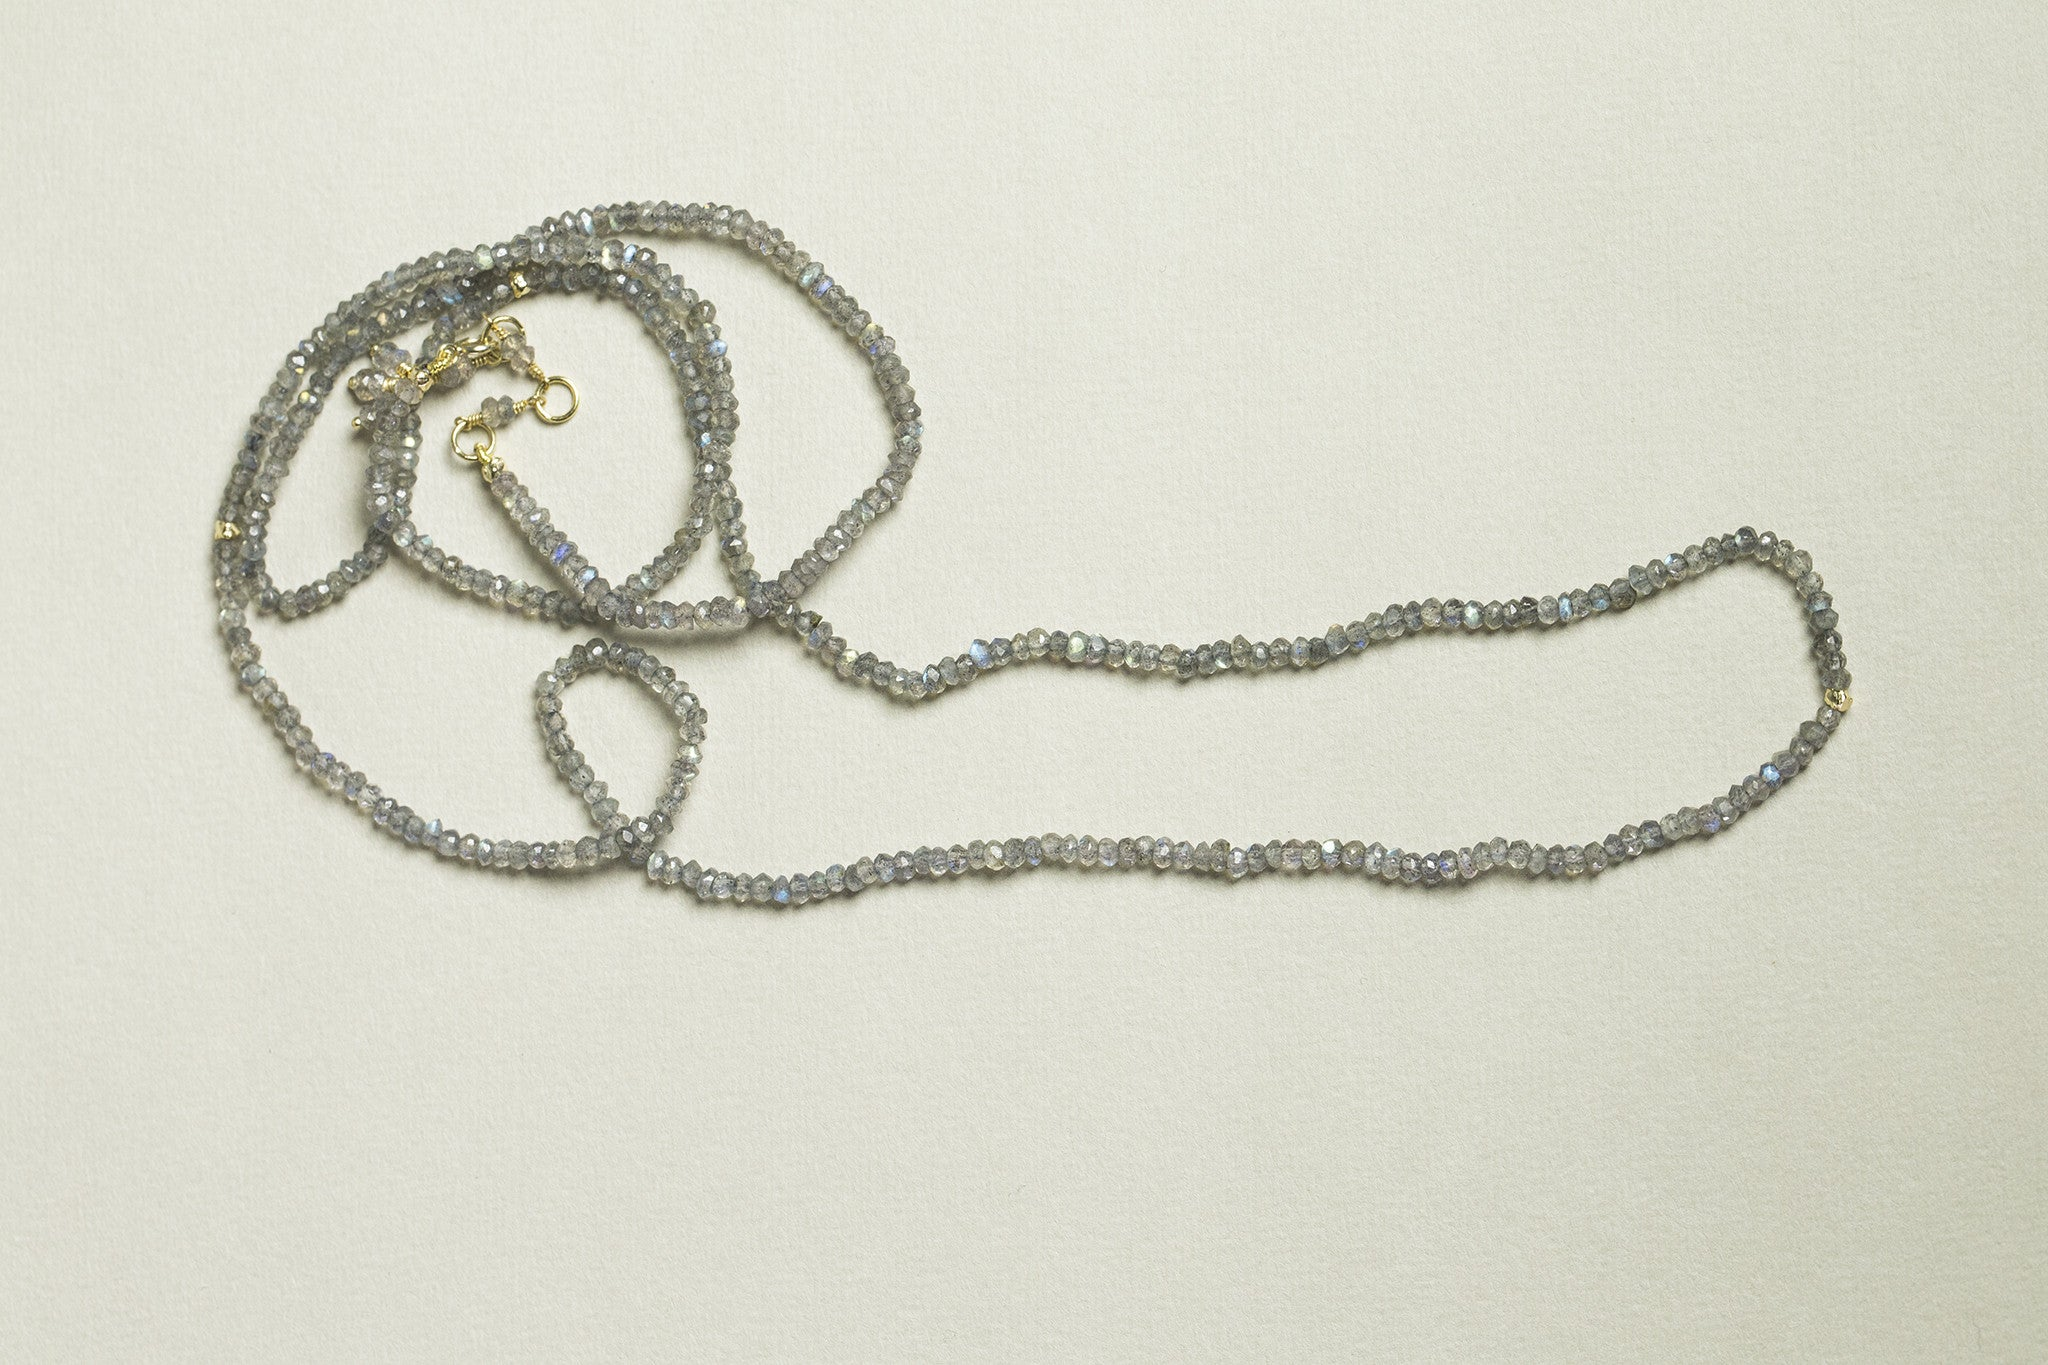 the back of the necklace has a decorative tassel which can be worn in the front